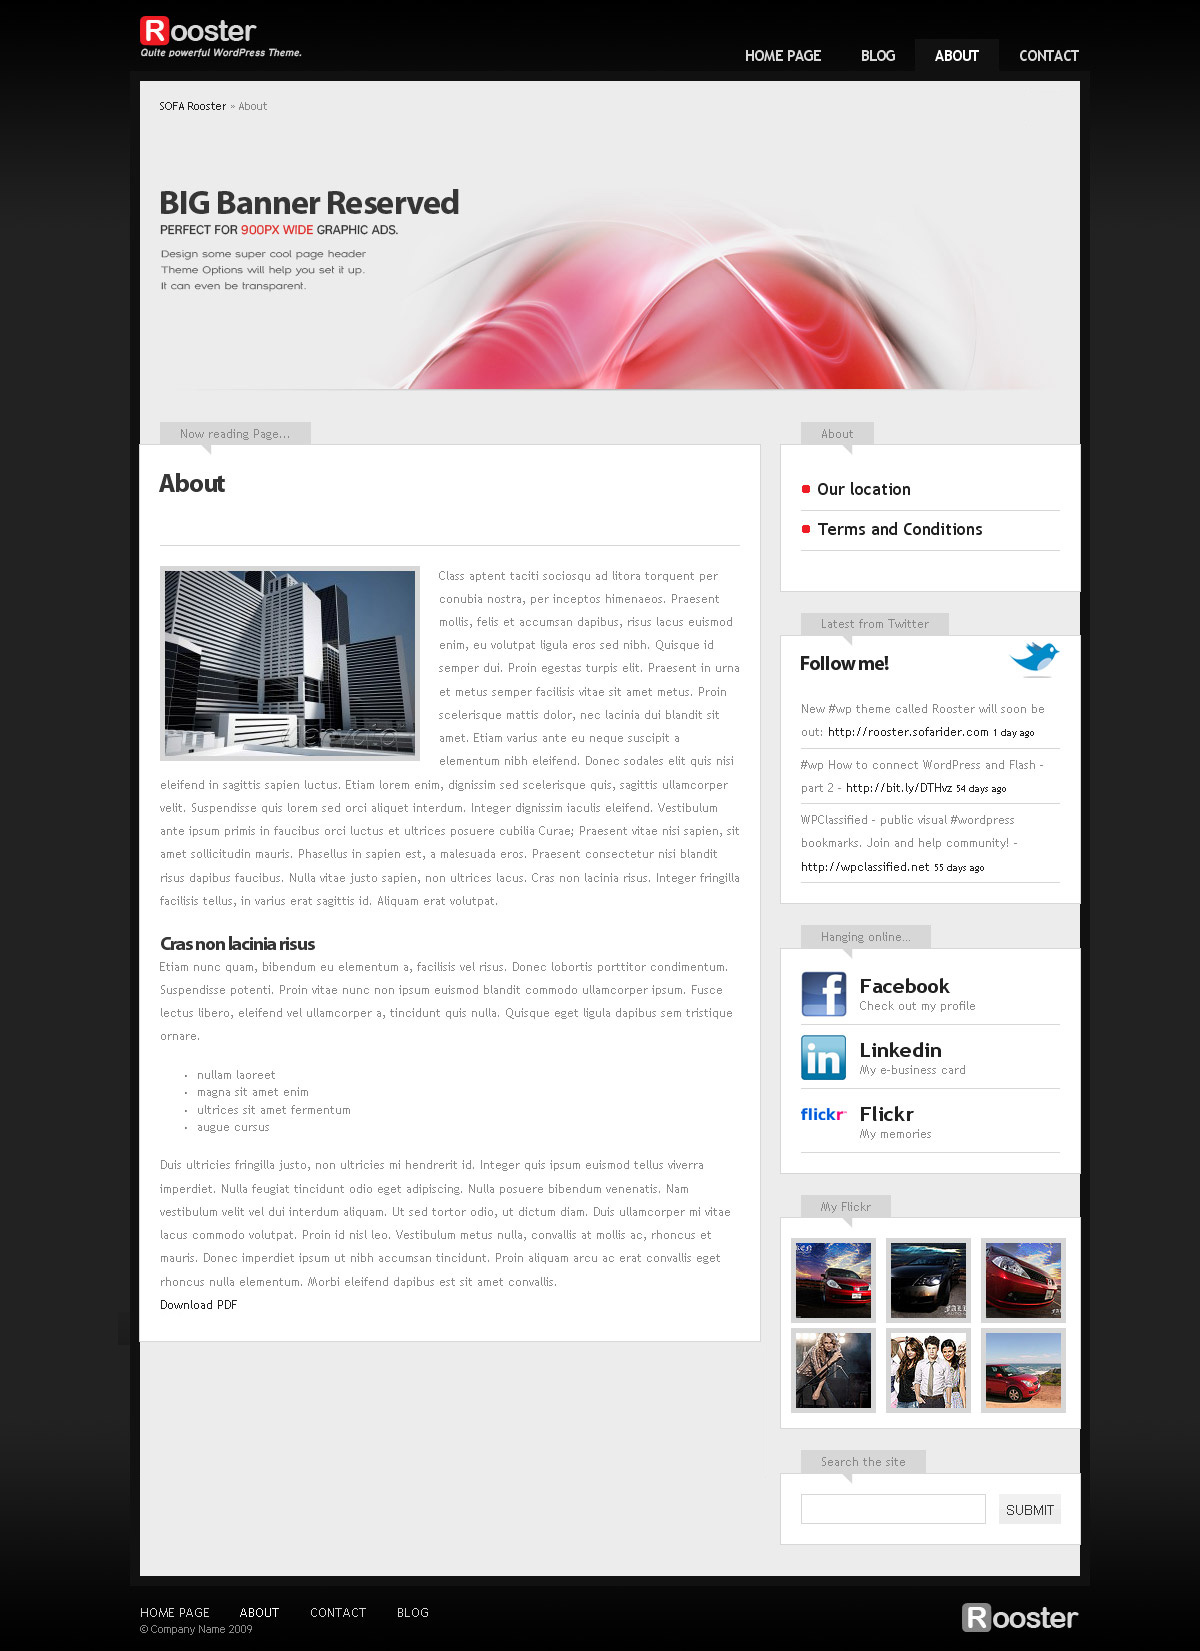 Sofa Rooster, WordPress theme - Page template layout.